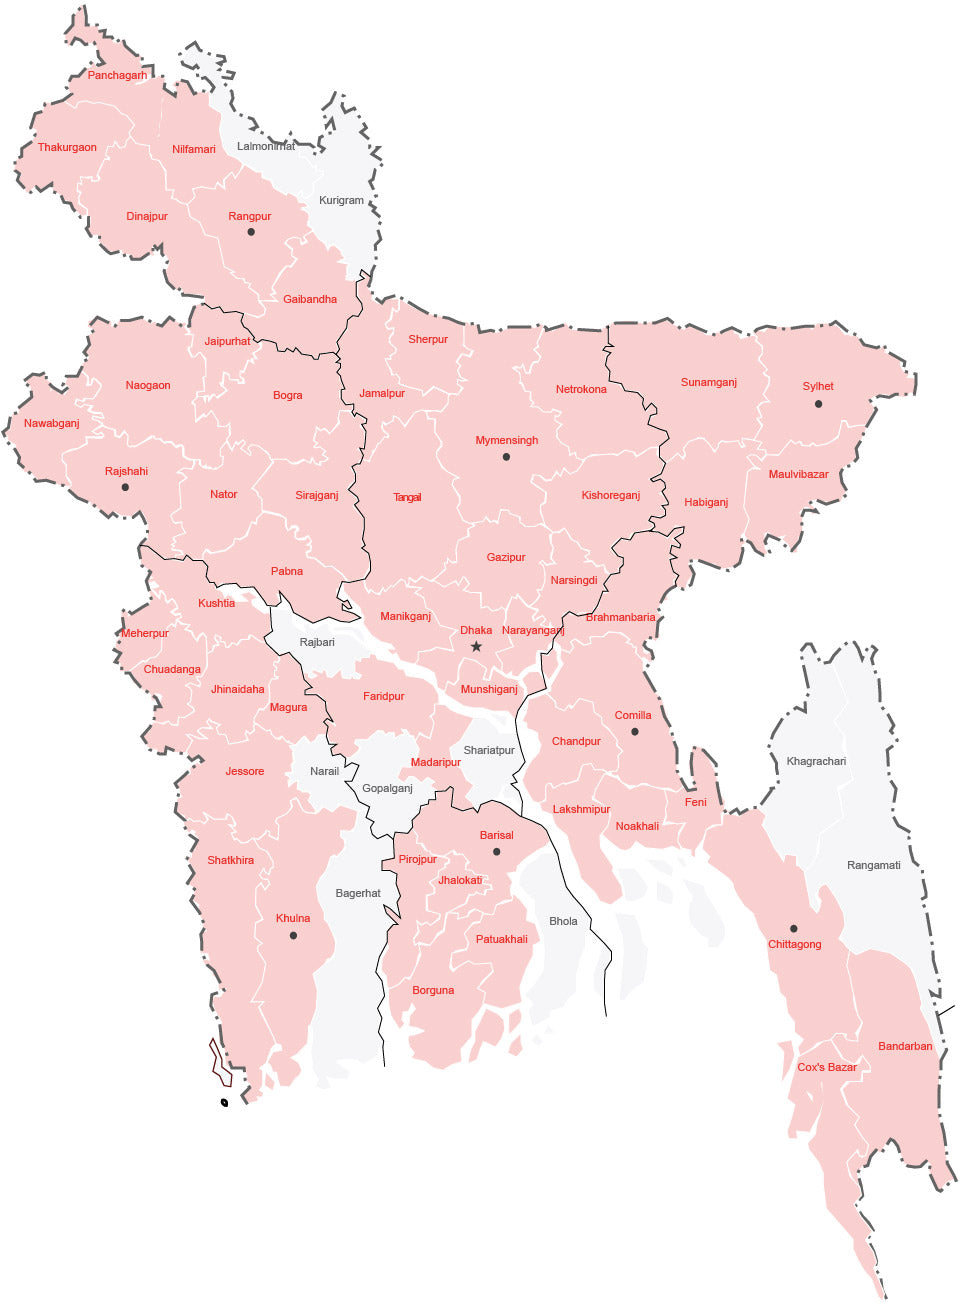 Babywala delivery coverage in bangladesh